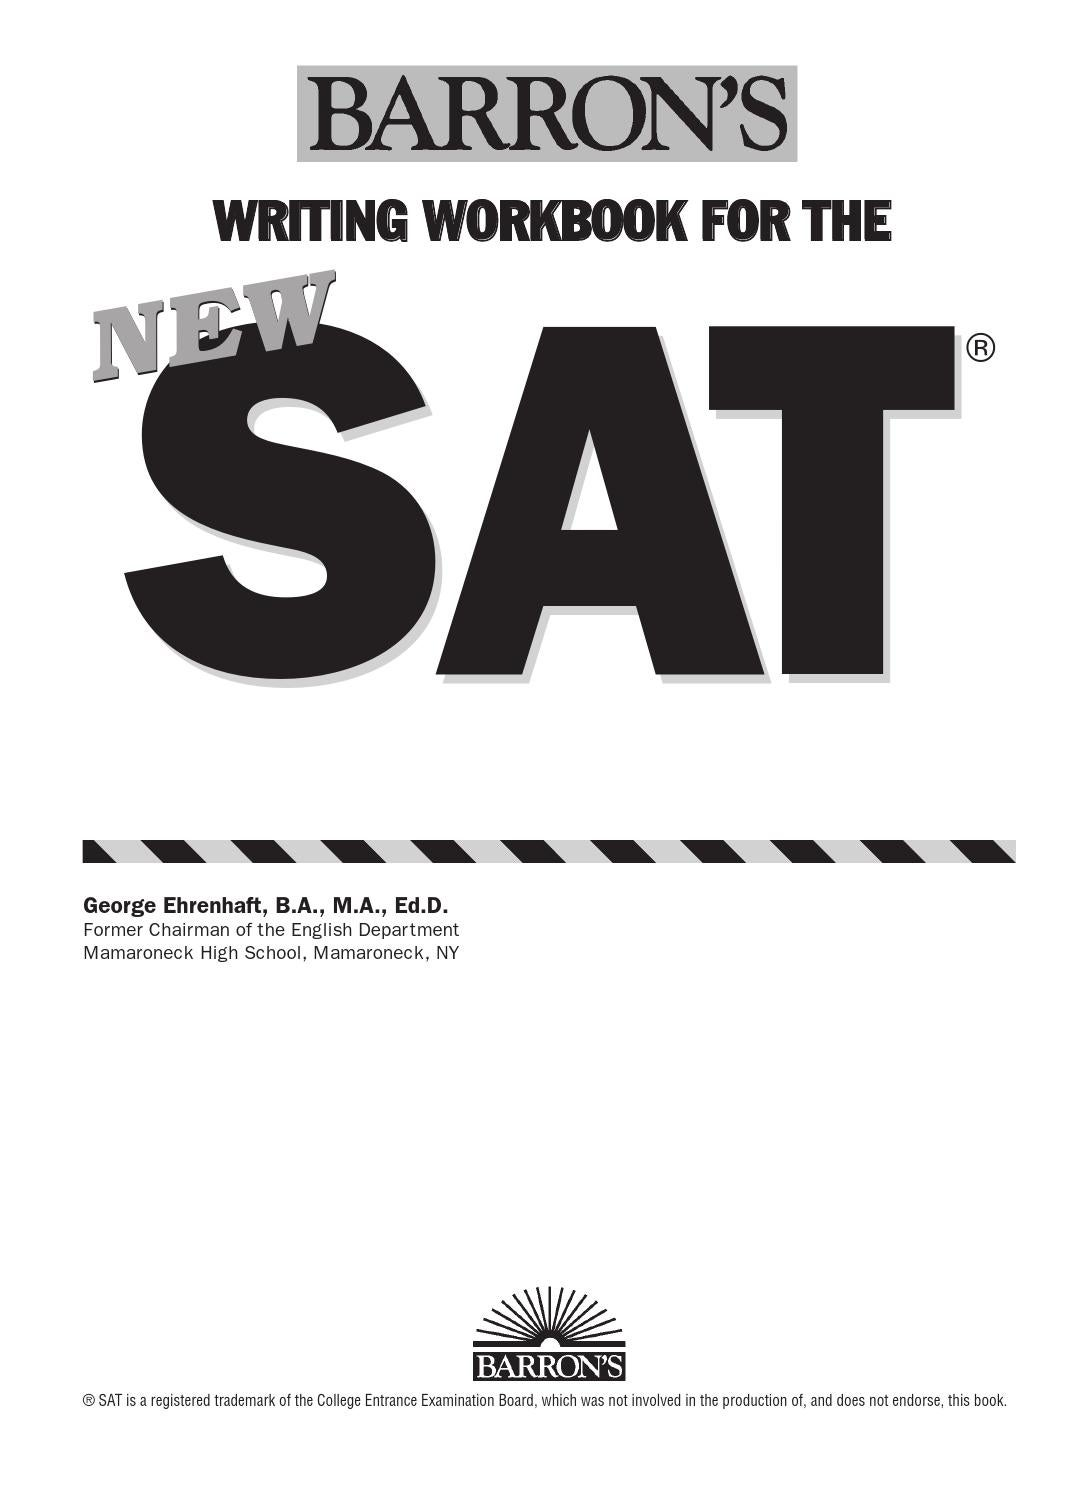 Preview barron's writing workbook for the new sat by